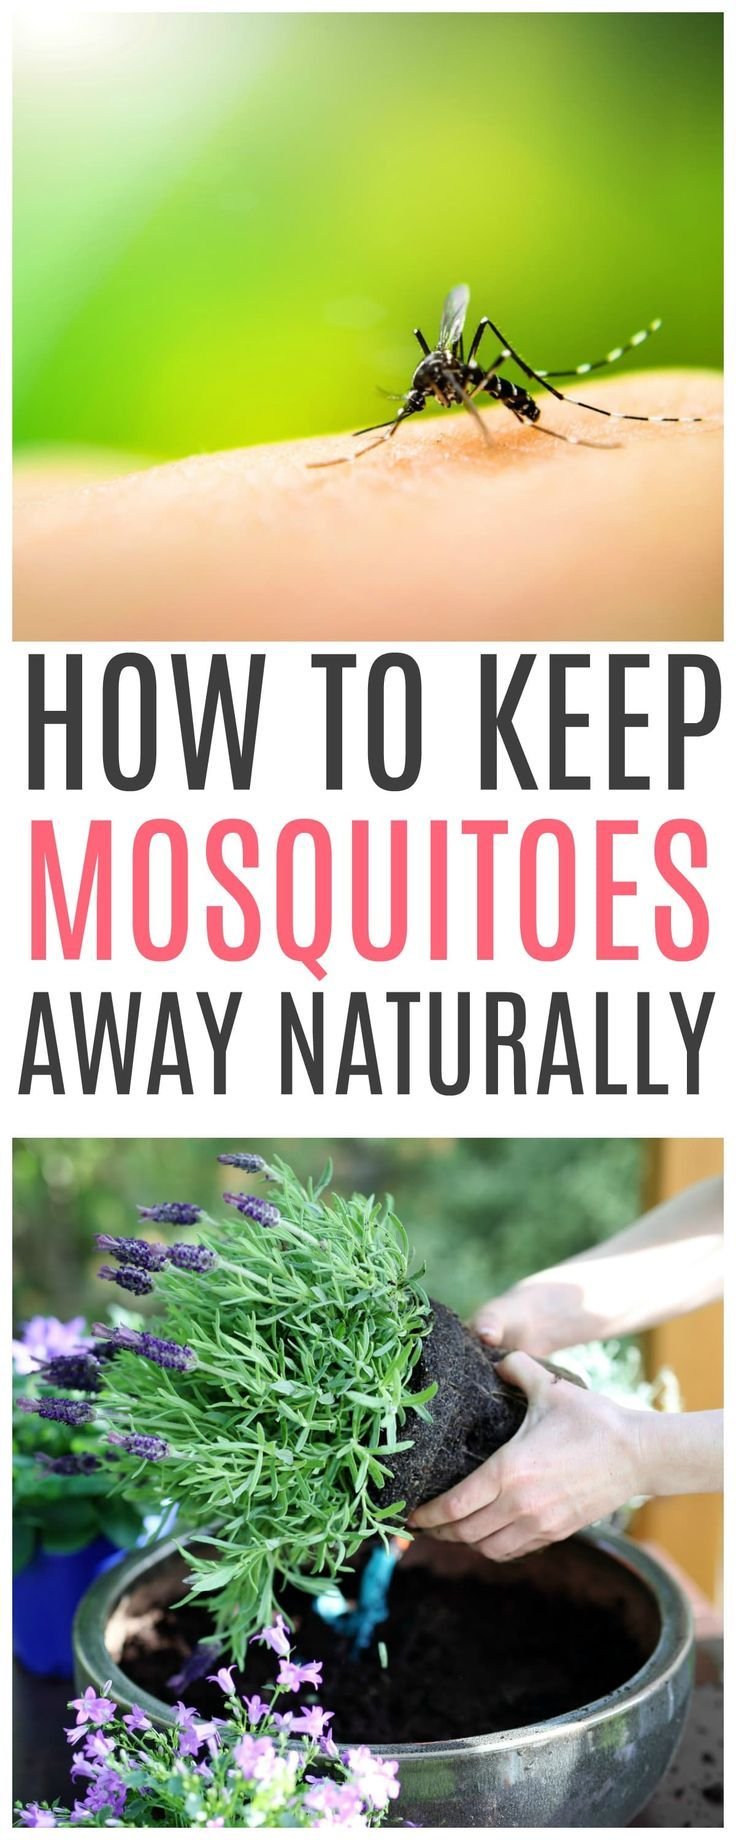 How To Get Rid Of Mosquitoes Life Hacks Mosquito Trap Helpful Hints